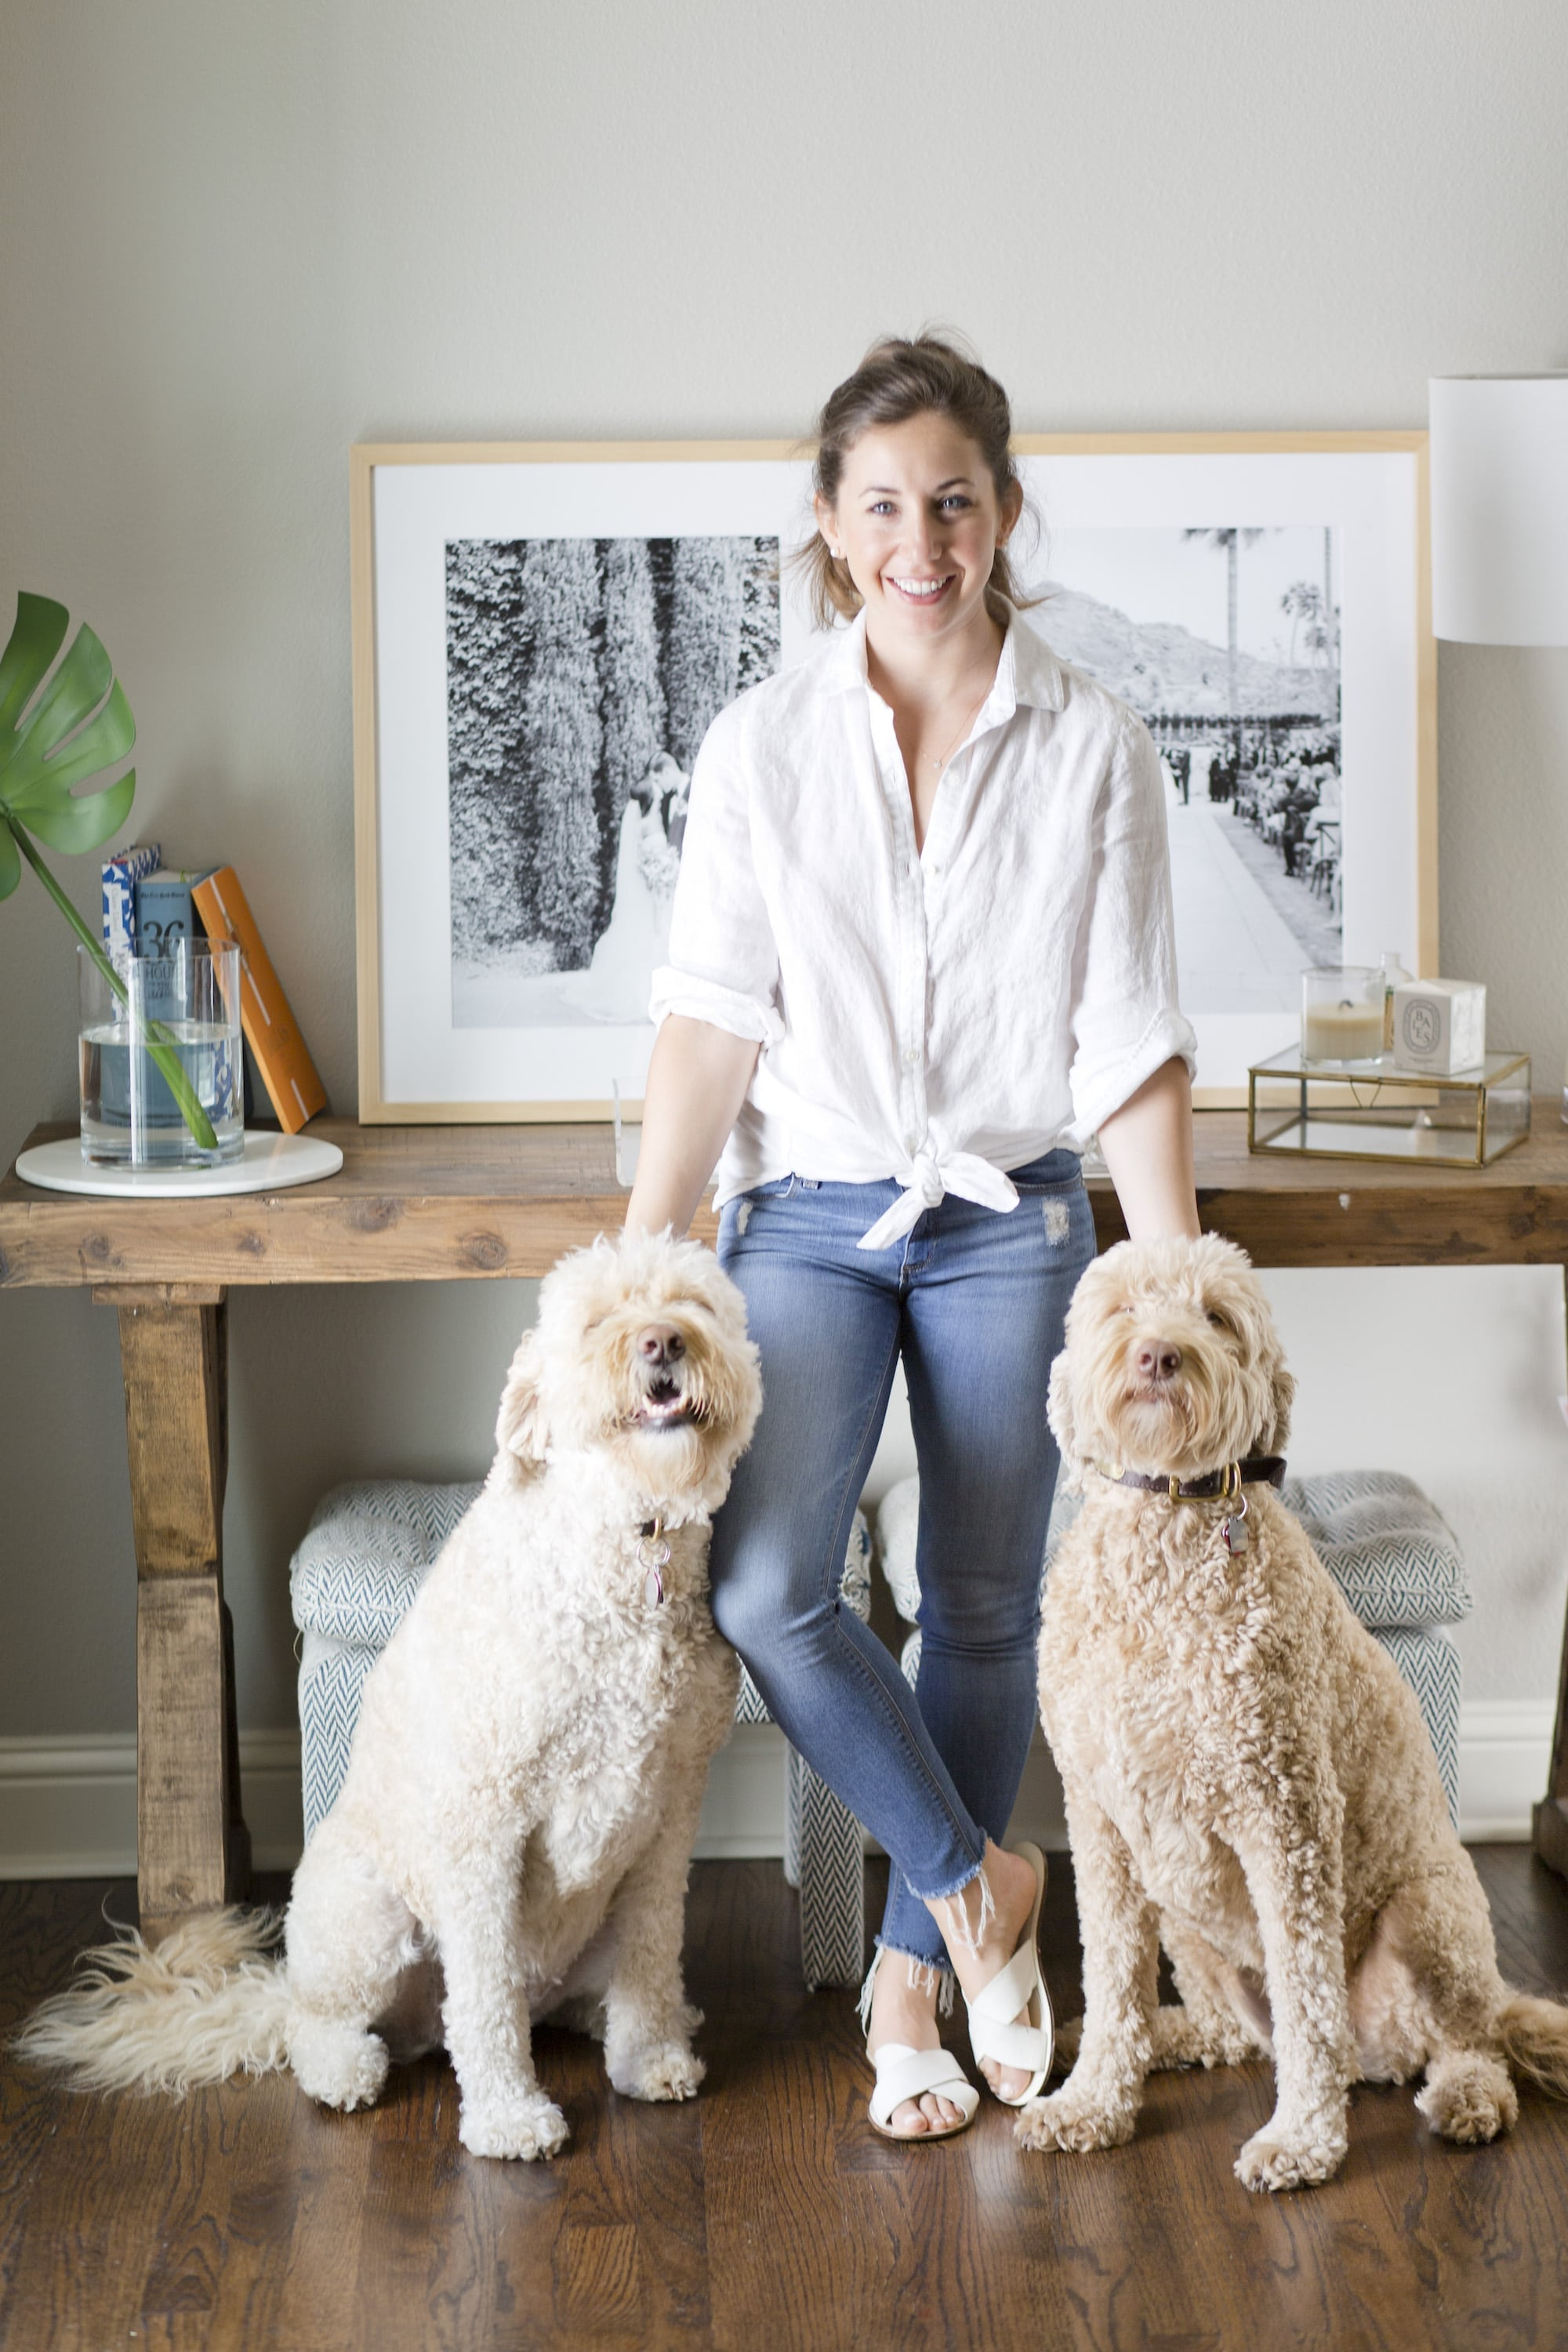 Ali Leigh in White Shirt and Jeans with Goldendoodles